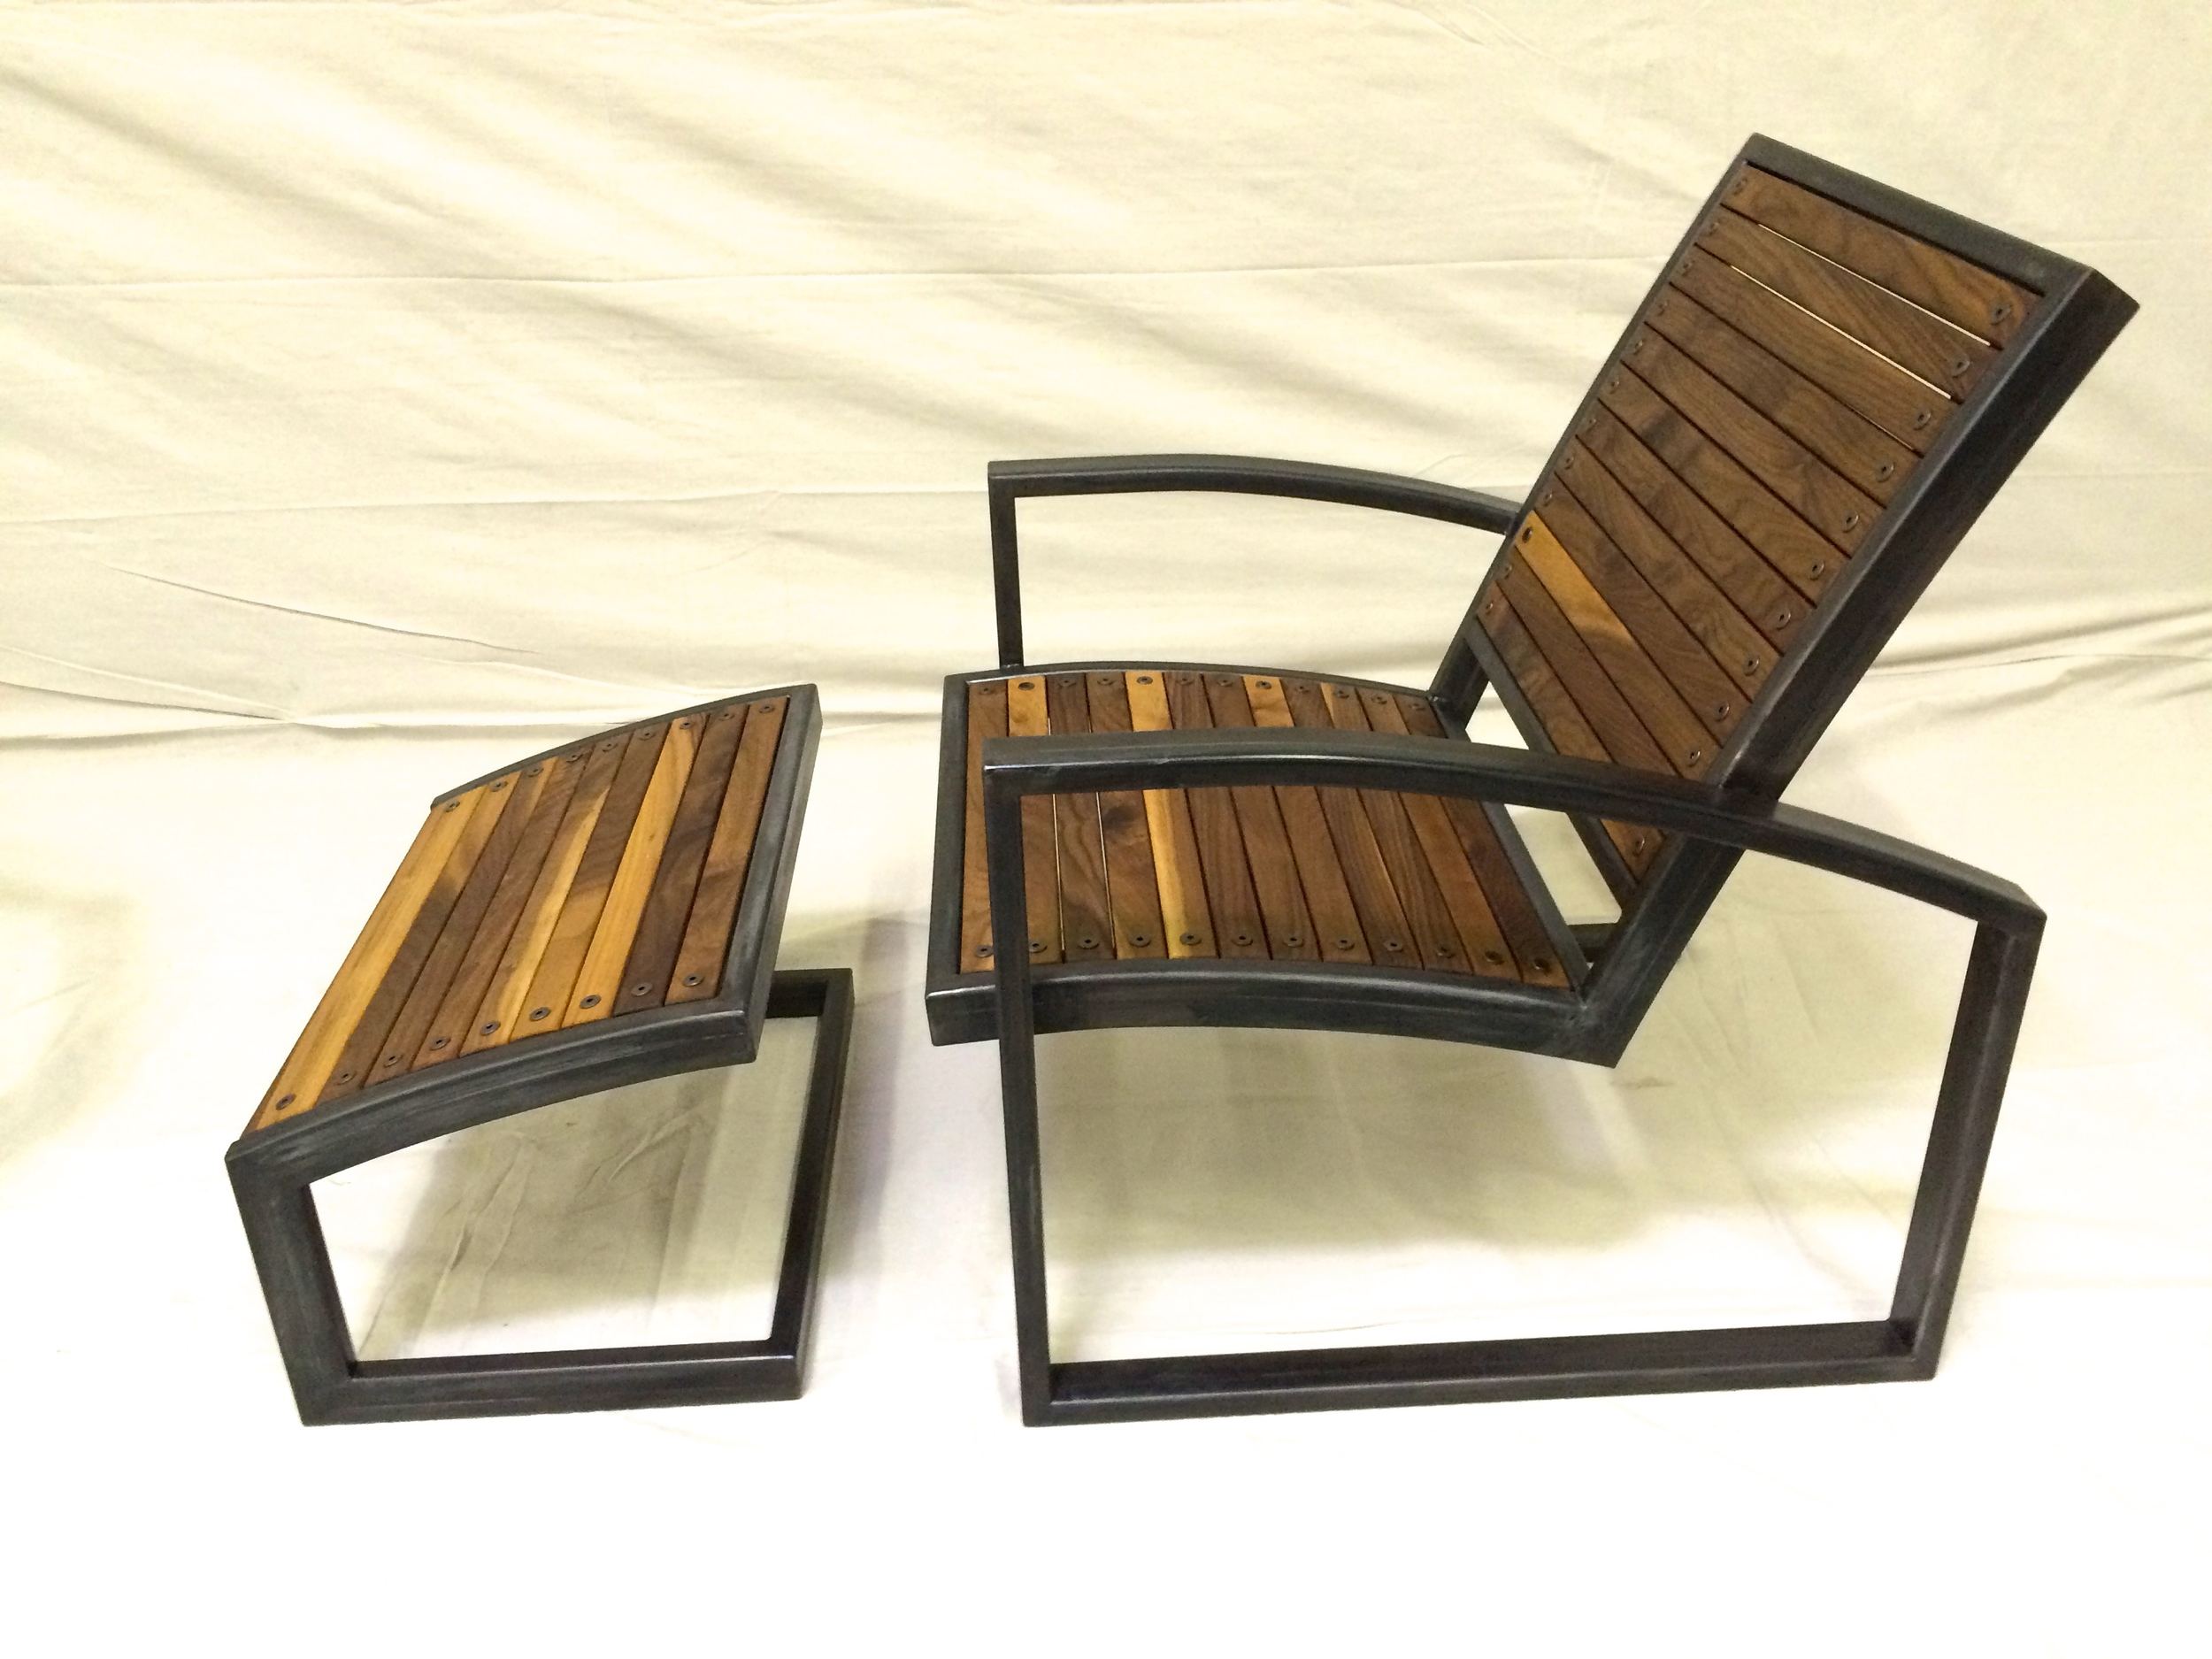 The Mark 1 Lounge Chair